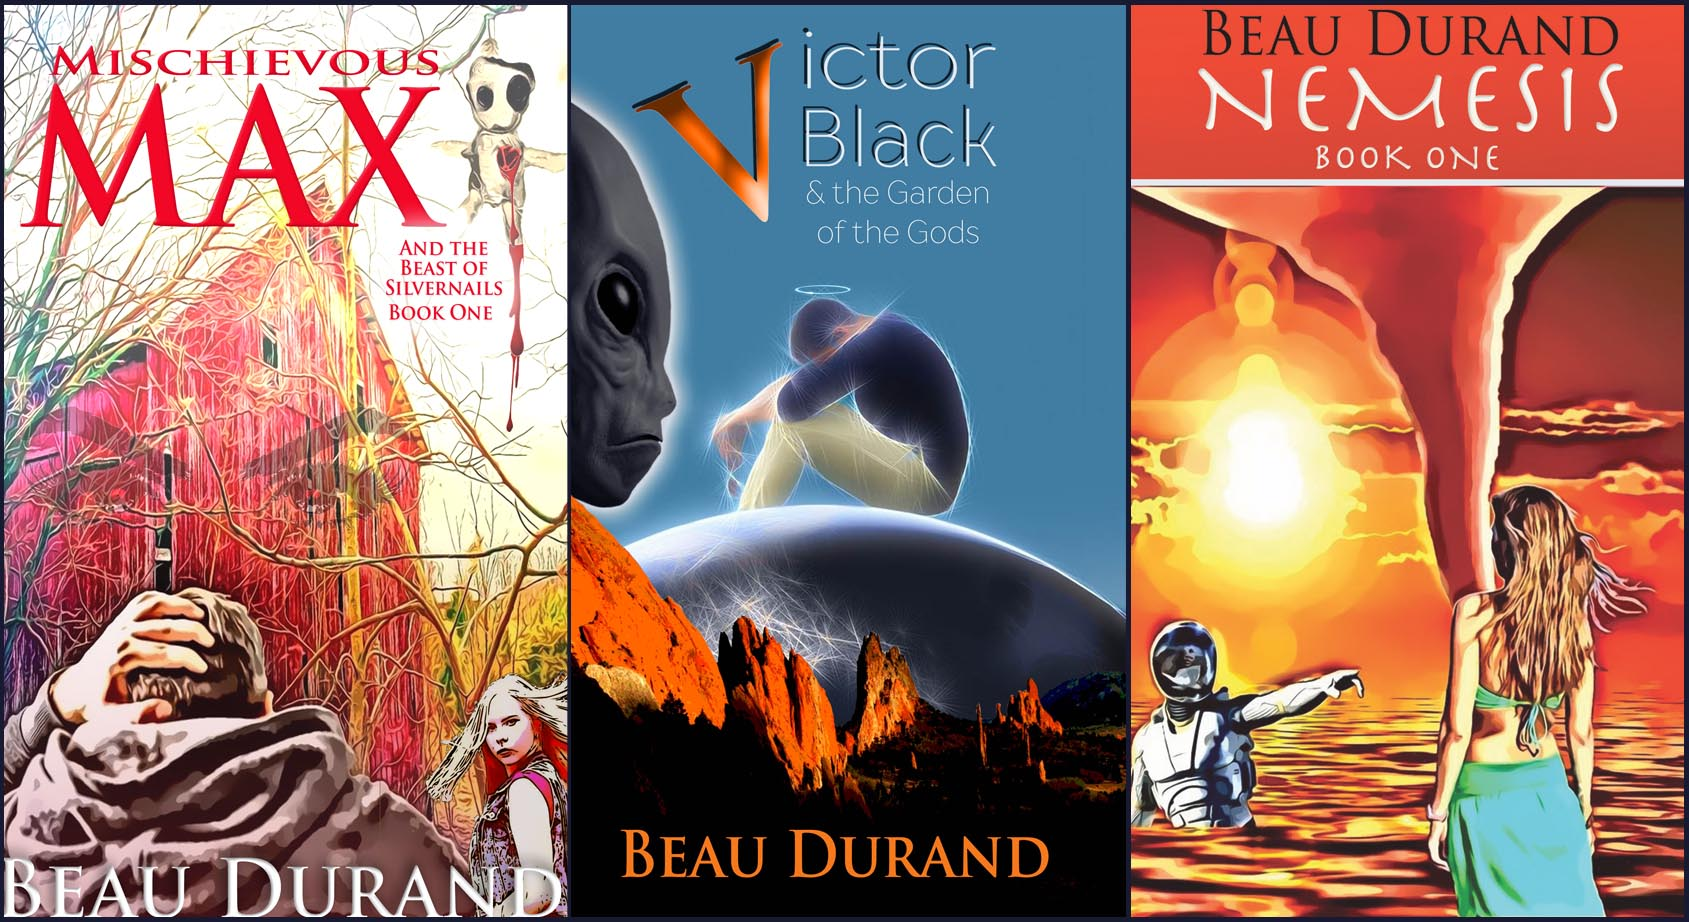 Victor Black, Nemesis, Mischievous Max - Novel Covers by Beau Durand - June 11, 2019